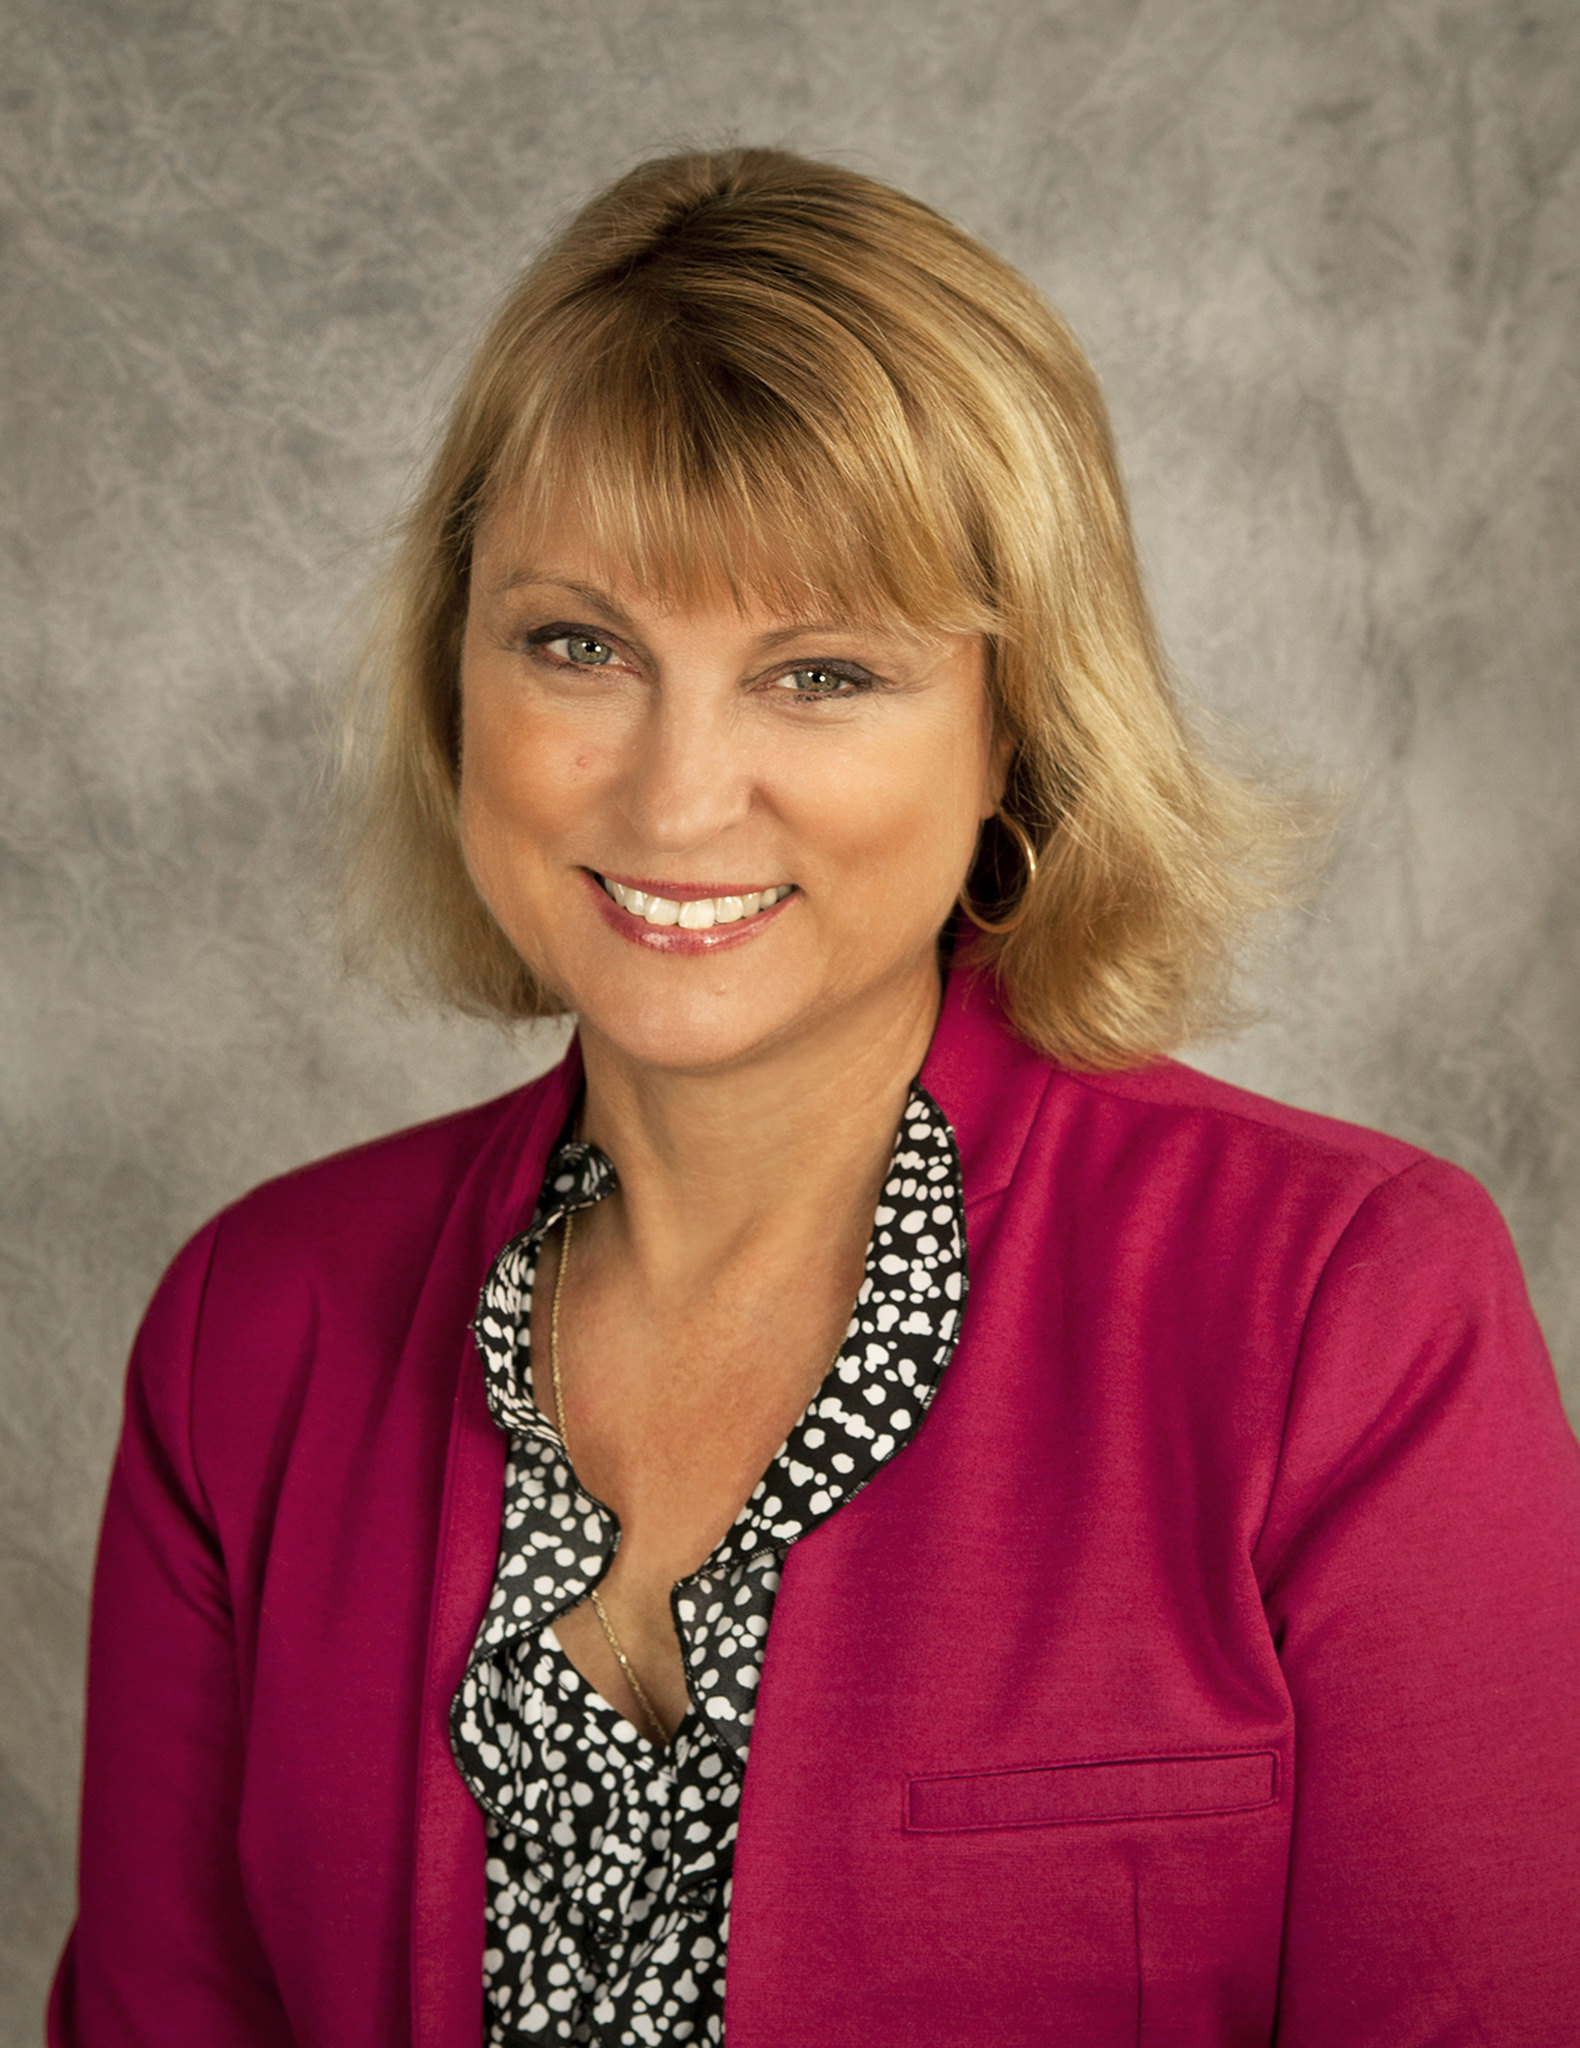 Ingham County Commissioner Teri Banas Announces Her Candidacy